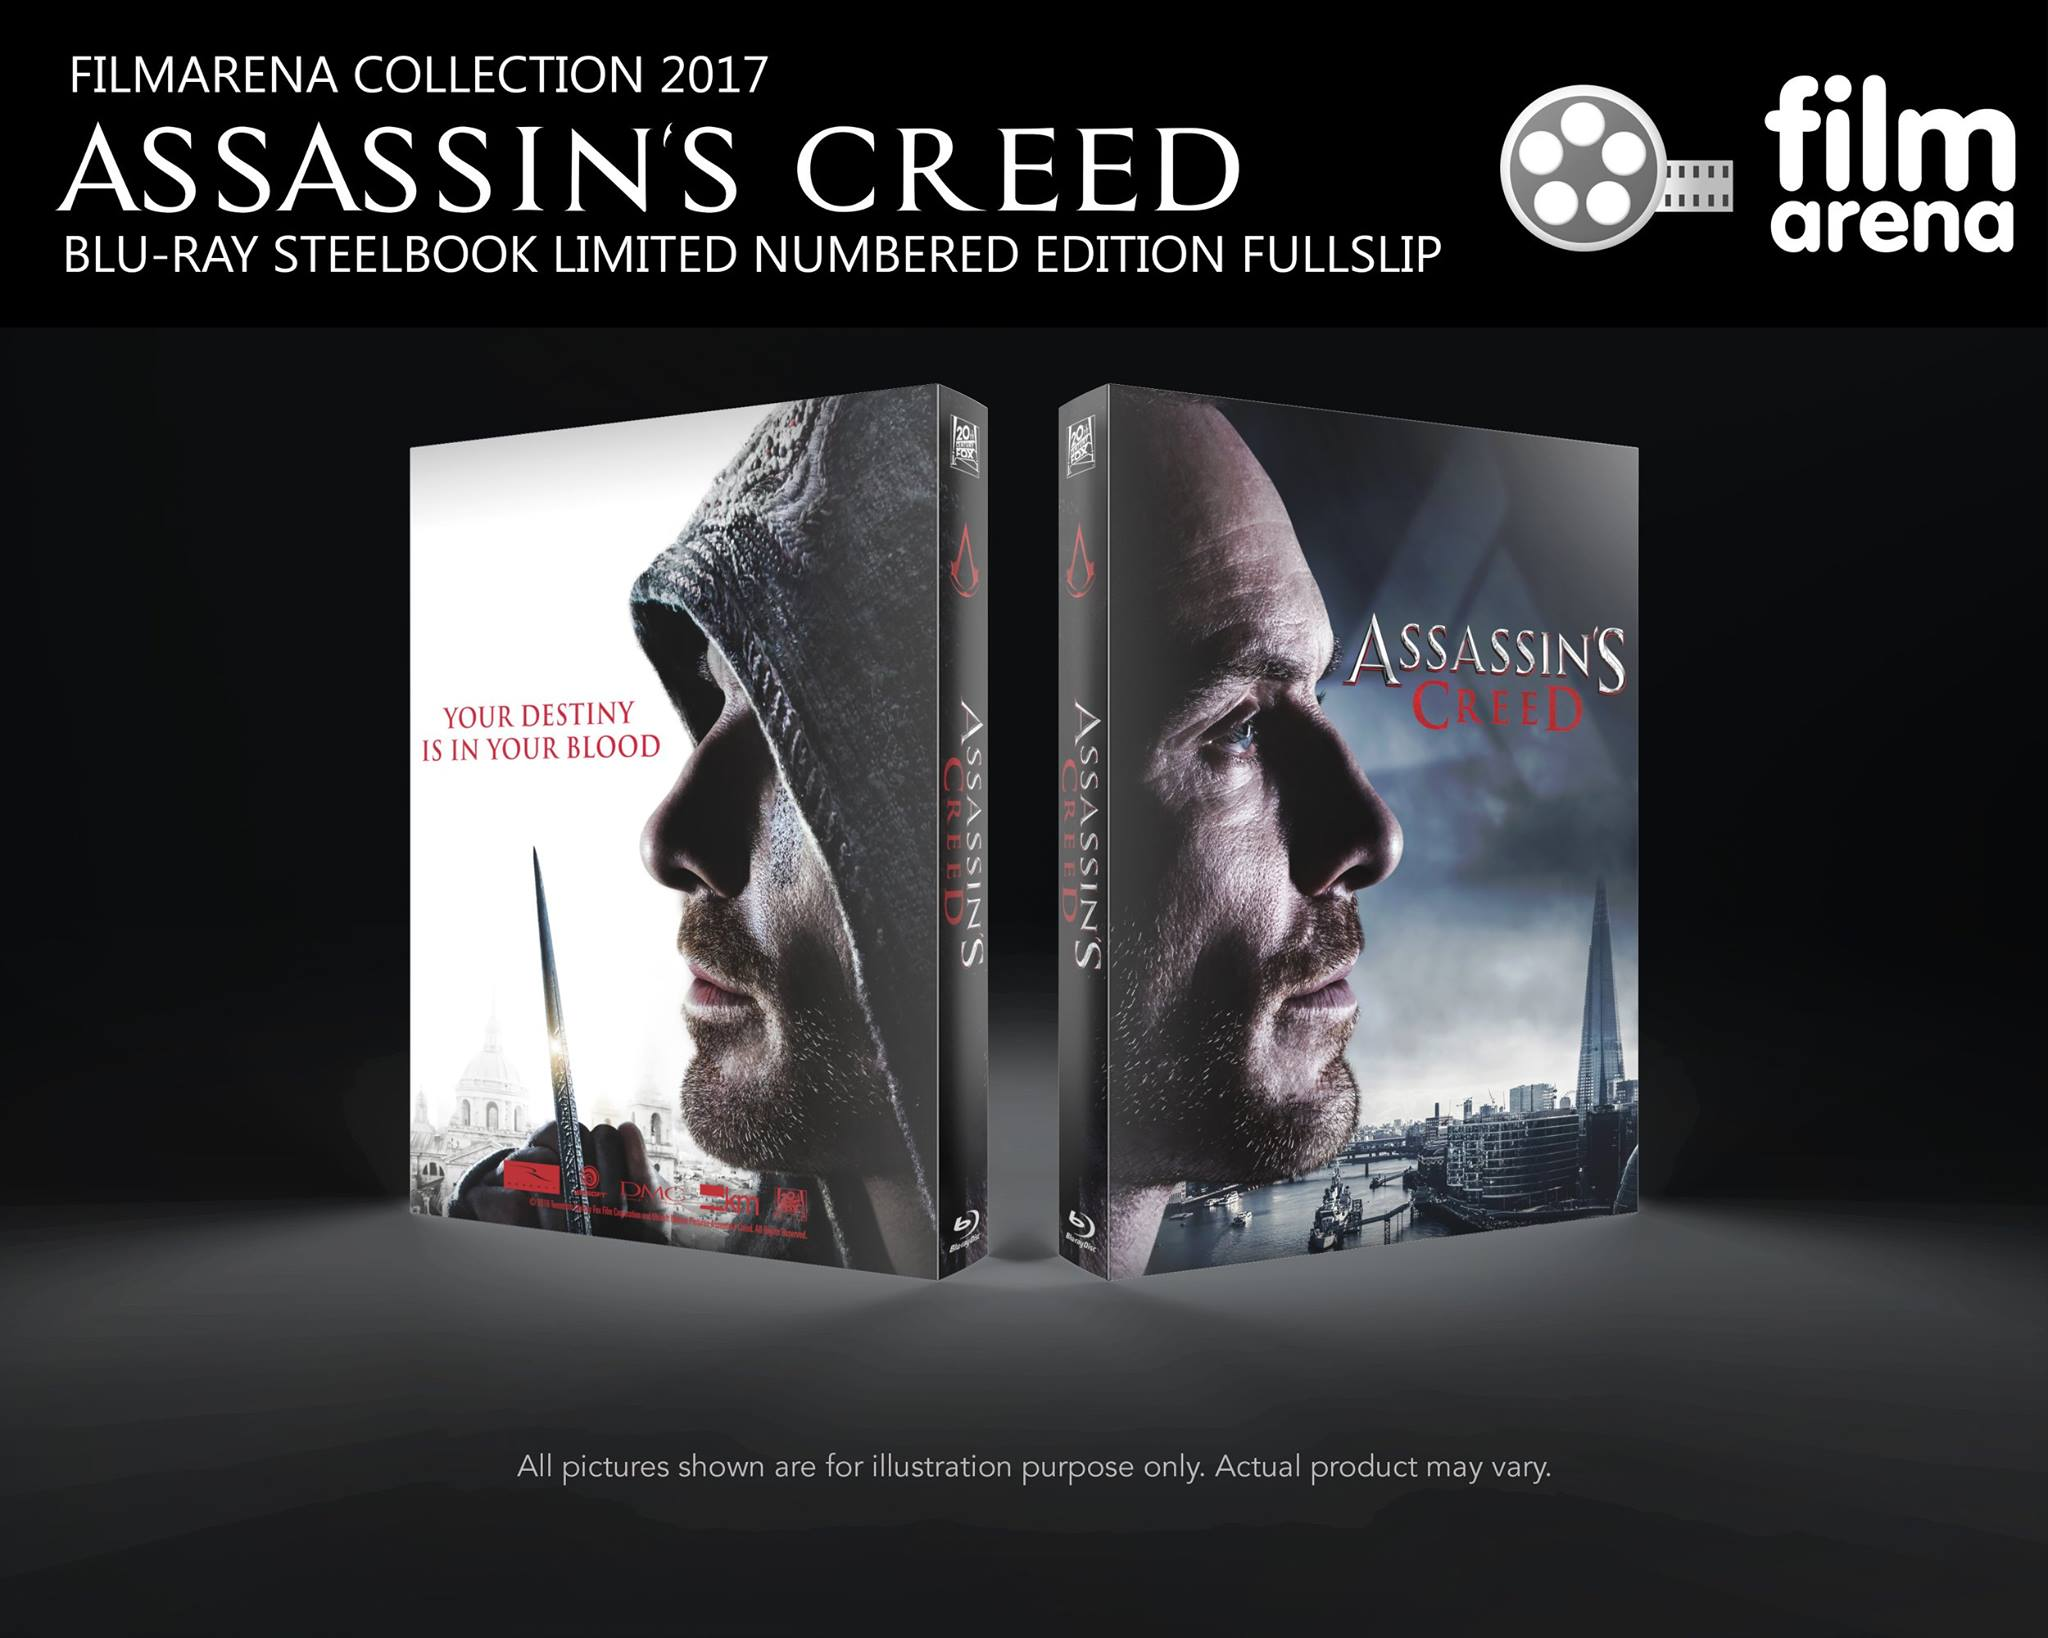 Assassin's Creed steelbook filmarena2